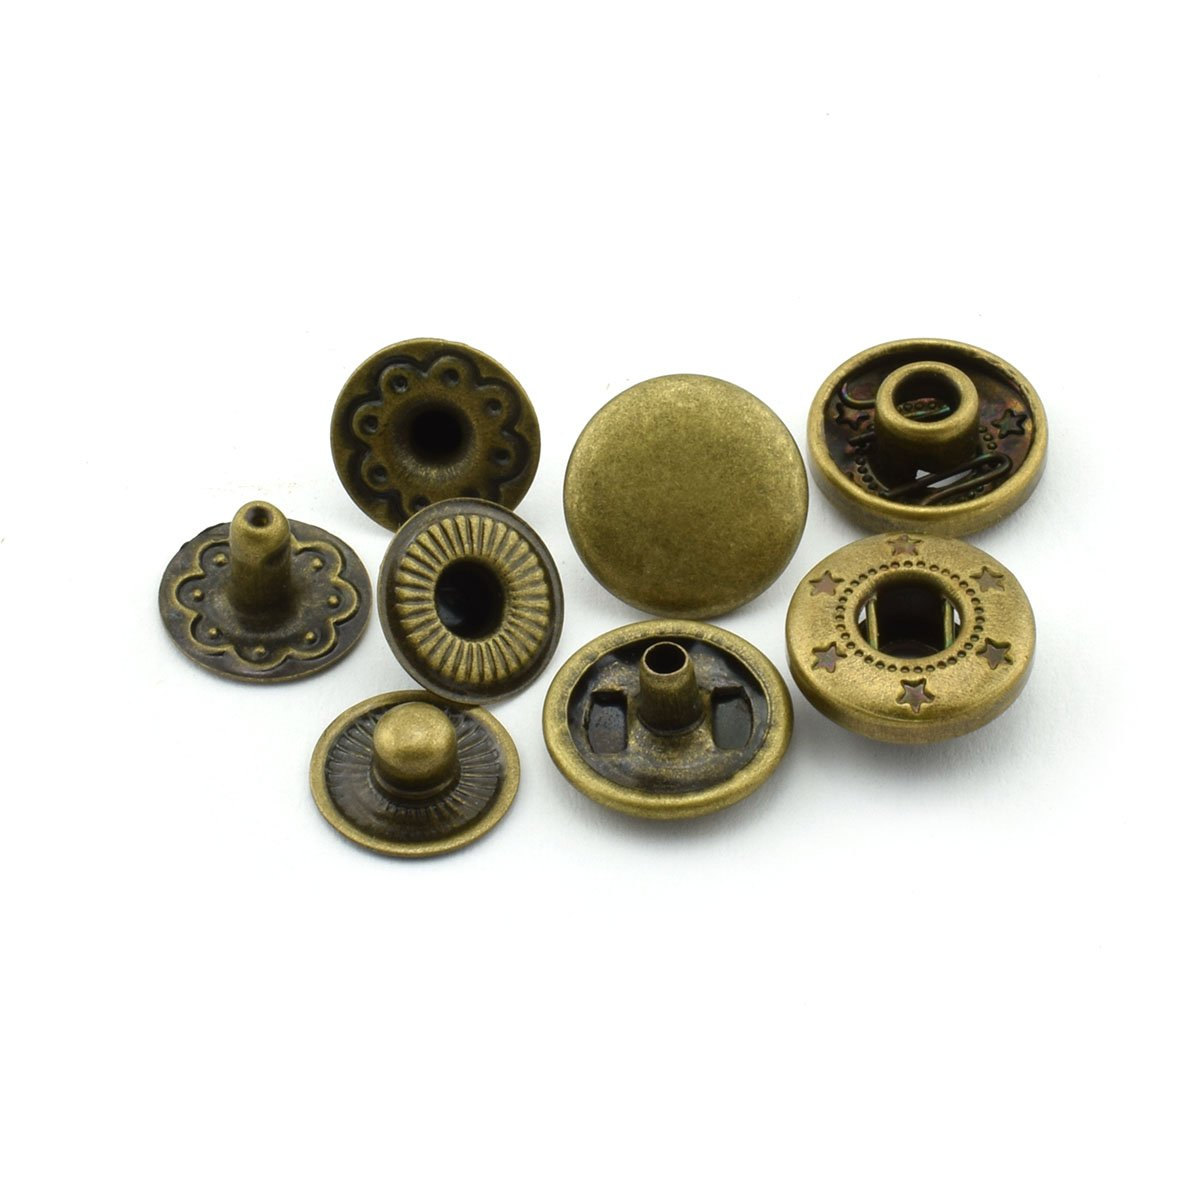 60 Sets 10mm Metal Snap Fasteners Press Stud Rounded Sewing Rivet Buttons Clothing Leather Craft DIY Poppers Black Pro Bamboo Kitchen